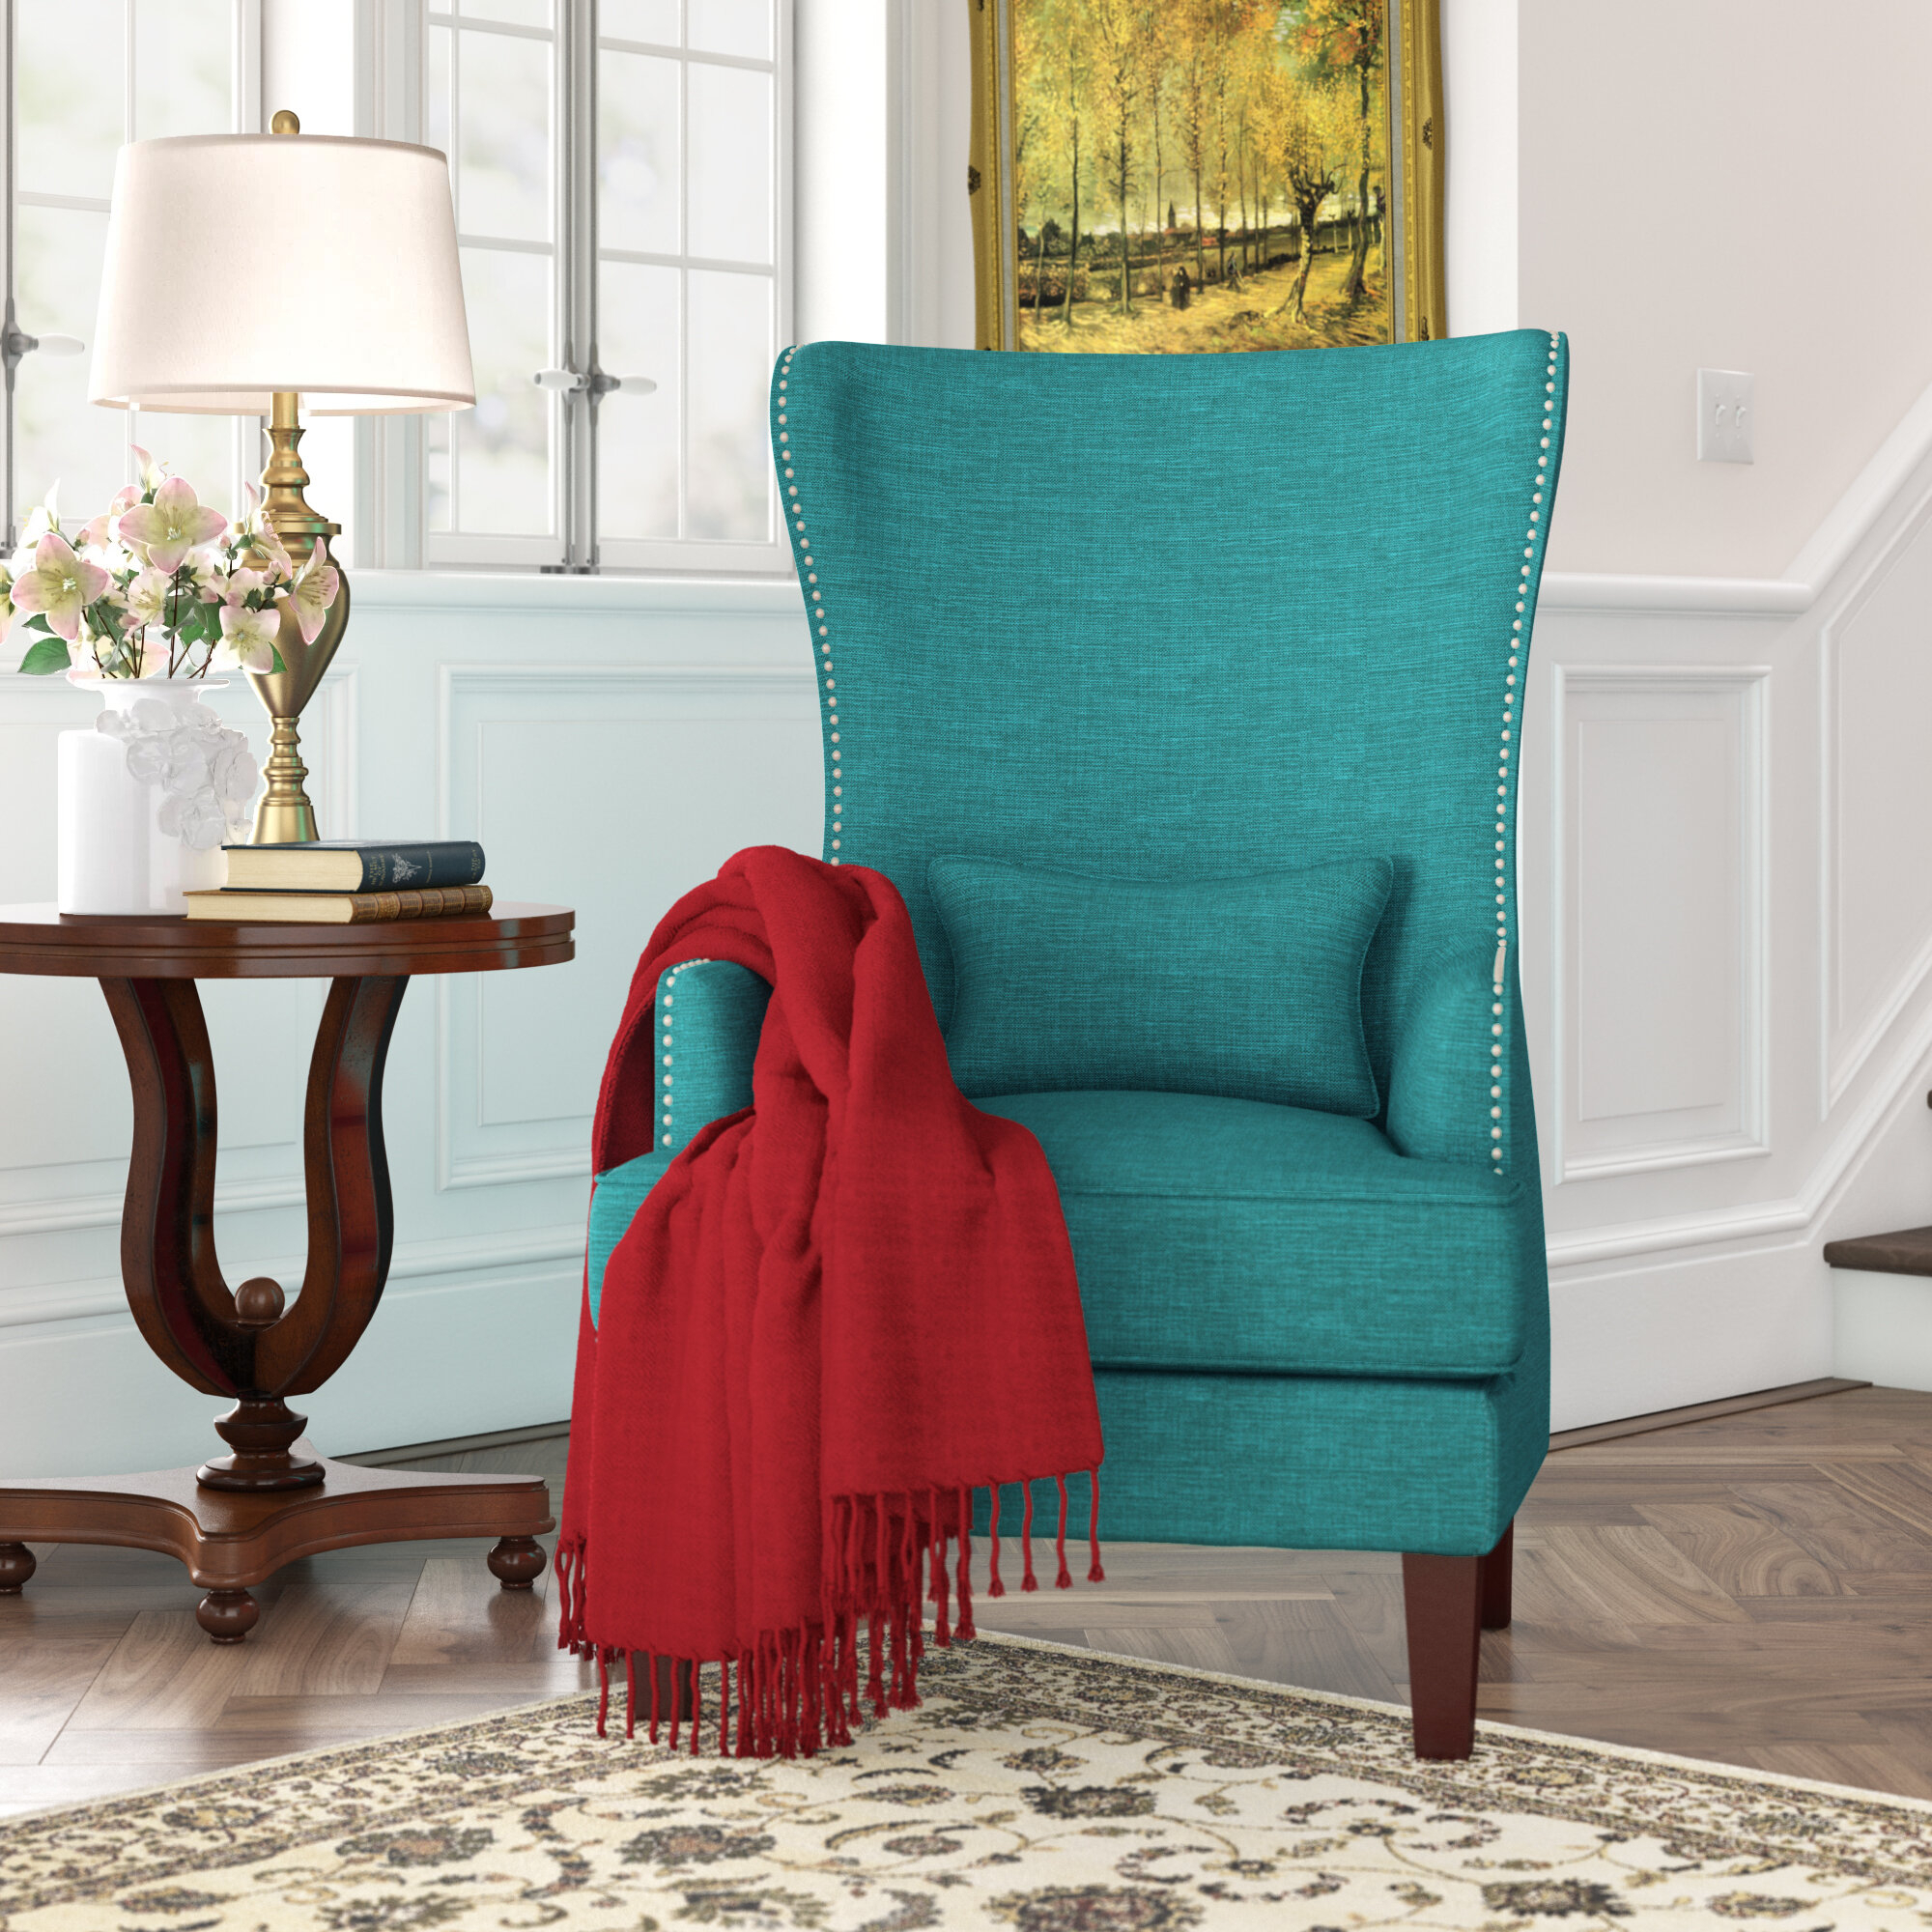 Pringle Wingback Chair With Andover Wingback Chairs (View 6 of 15)